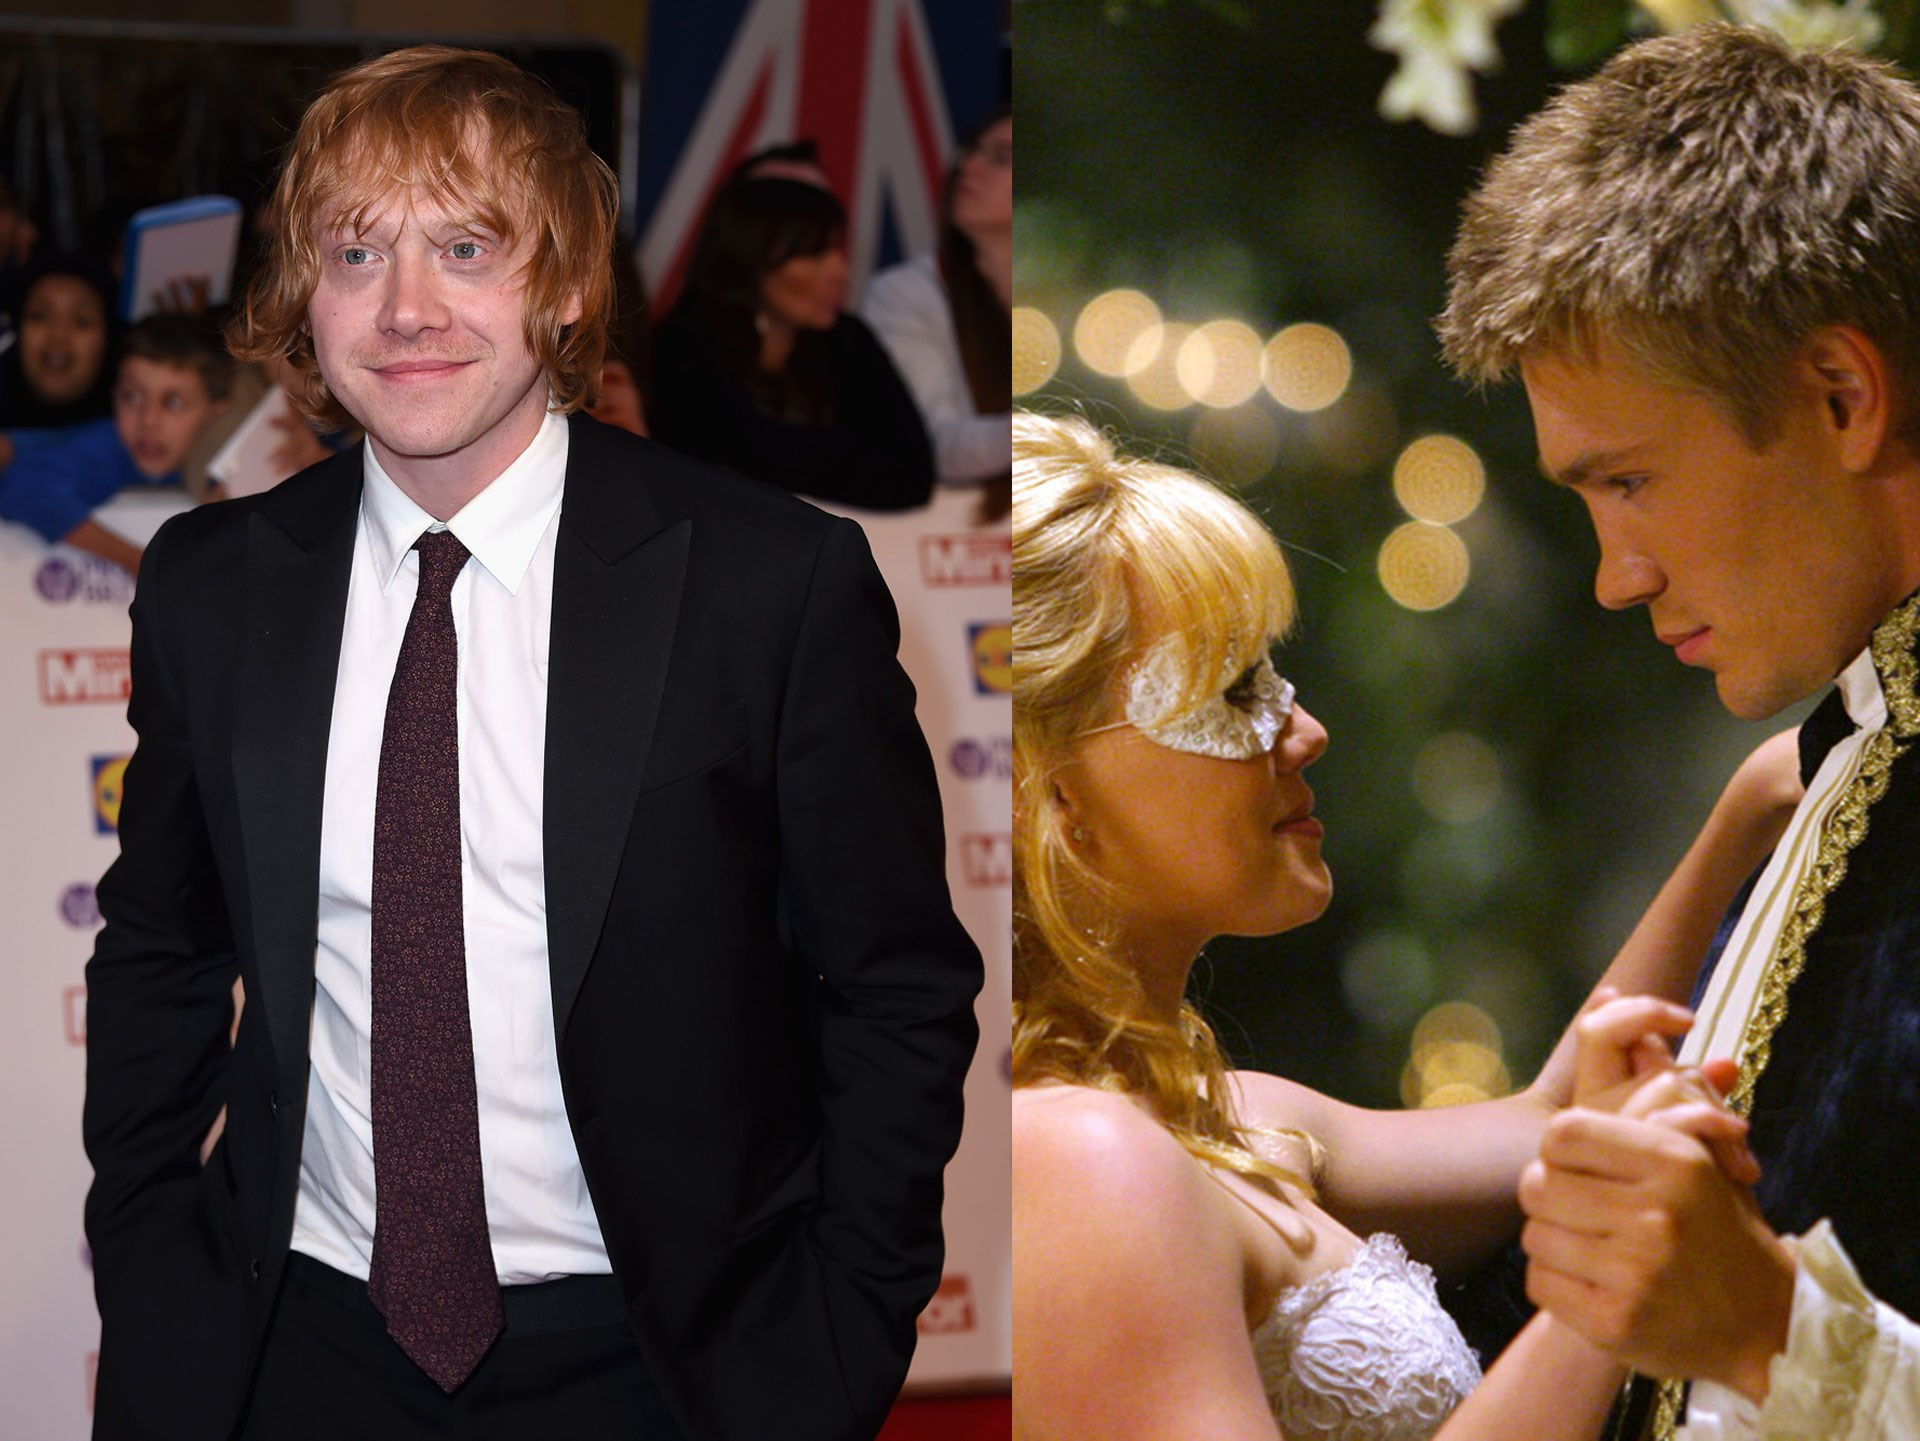 #FACT: 2004's *A Cinderella Story* starring Hilary Duff and Chad Michael Murray is one of the top three greatest movies ever made. Another fun fact; none other than the original red hair, hand-me-down robes-wearing Ron Weasly was THIS CLOSE to taking out the role of Hilary's love interest. Sadly, Rupert Grint (IRL name) had to turn it down for *Prisoner of Azkaban.* Imagine that...